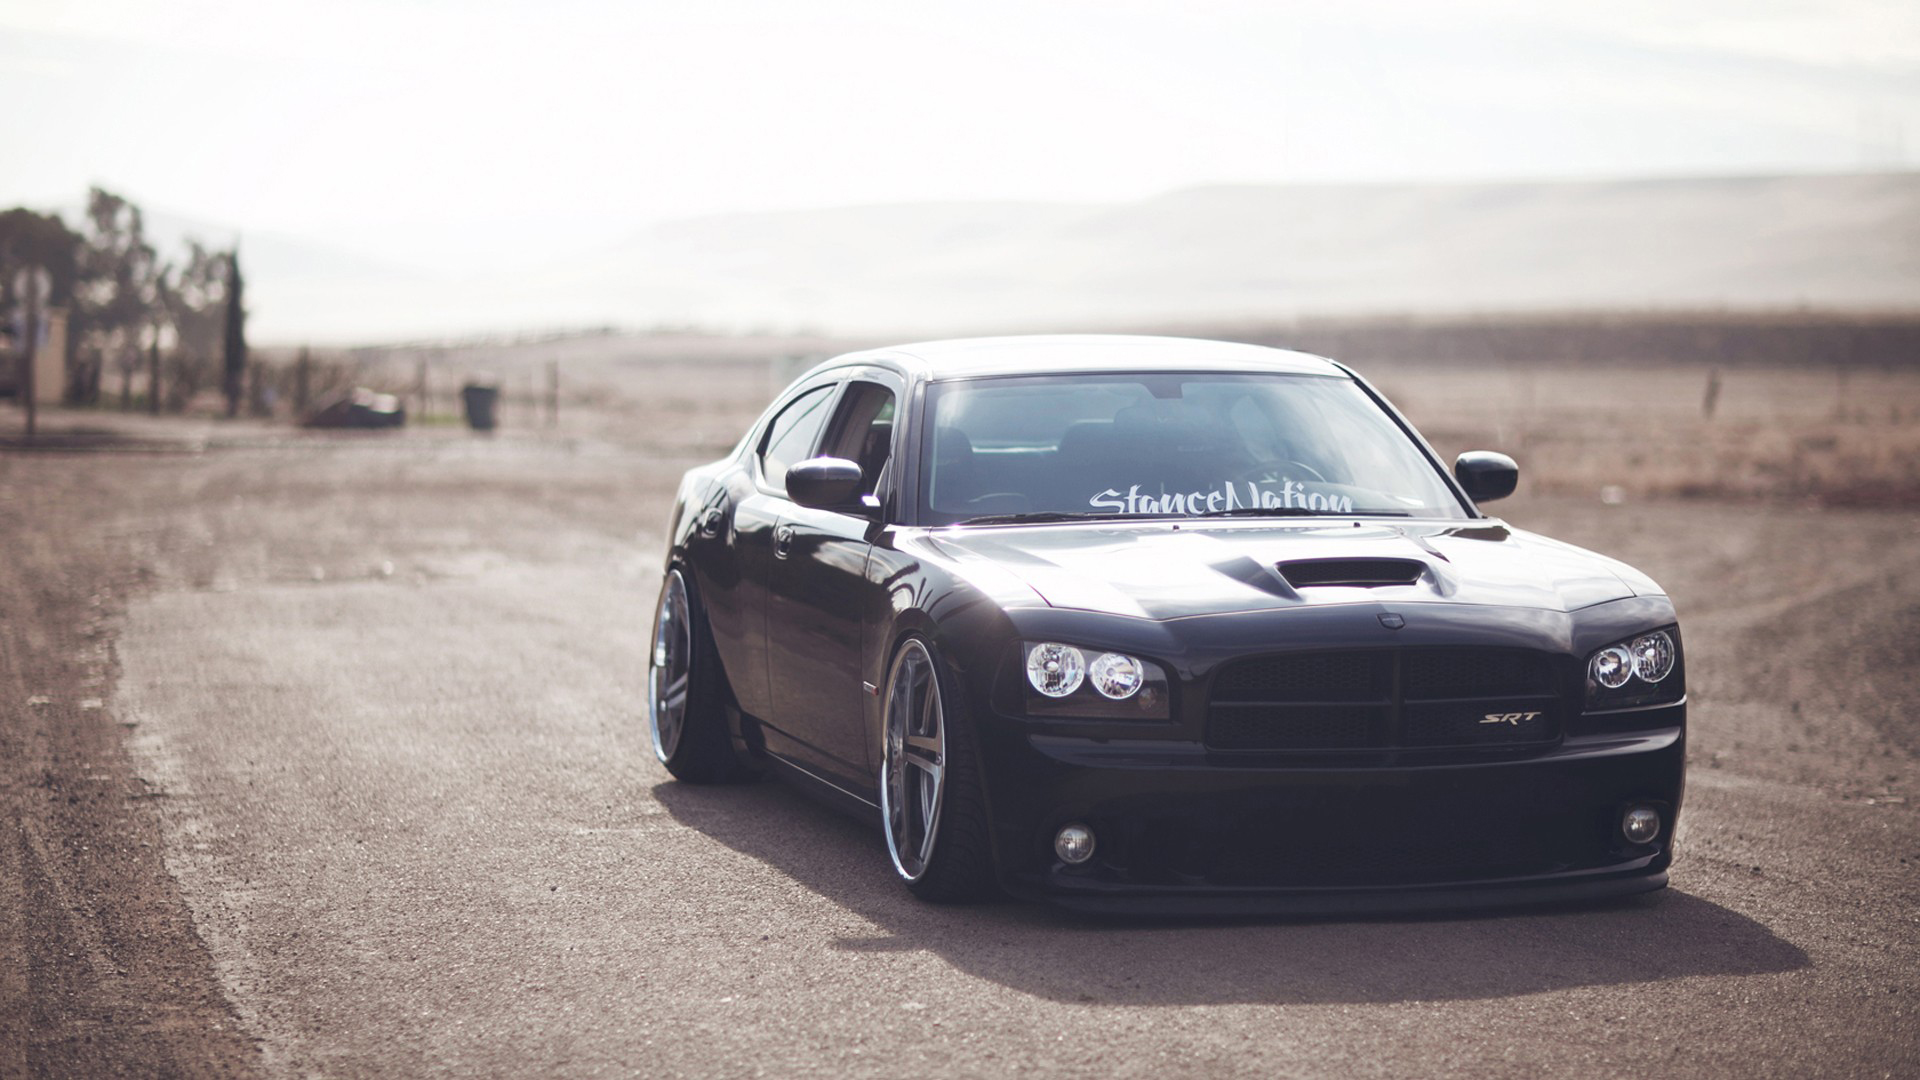 41 Dodge Charger Srt8 Hd Wallpapers Backgrounds